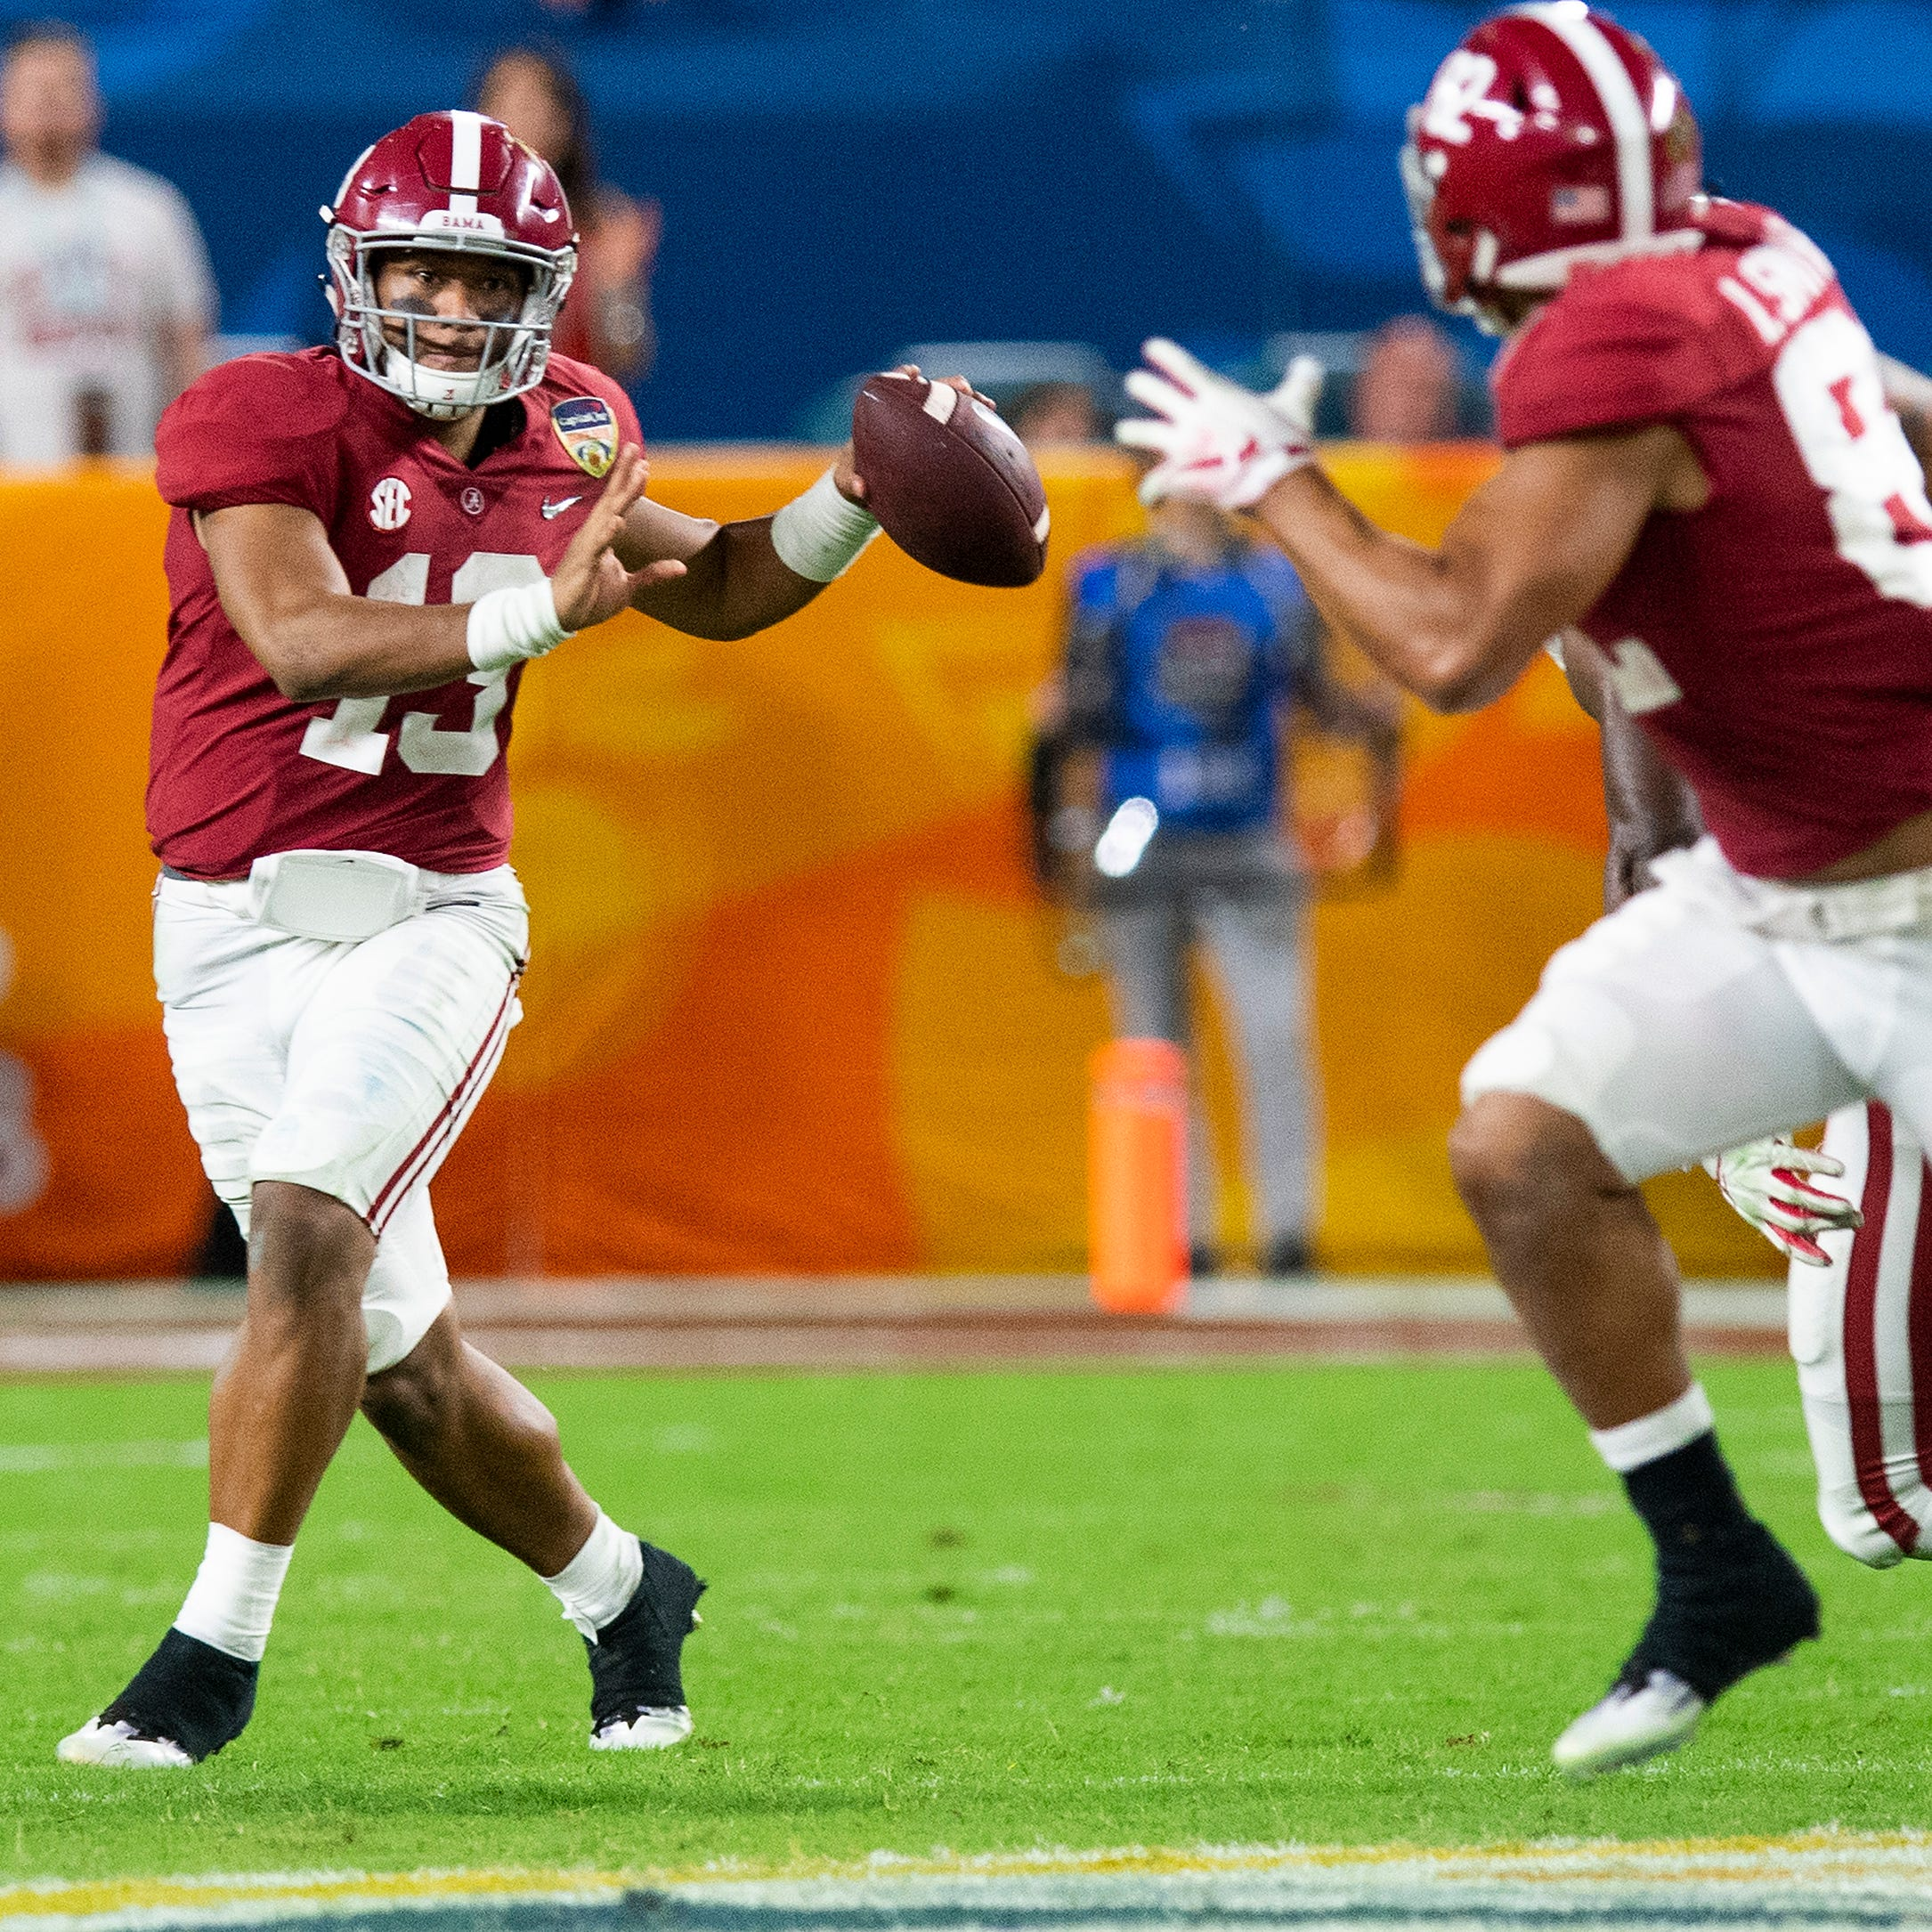 Voices of the SEC:  Alabama heads to title game, LSU, Kentucky snag bowl wins